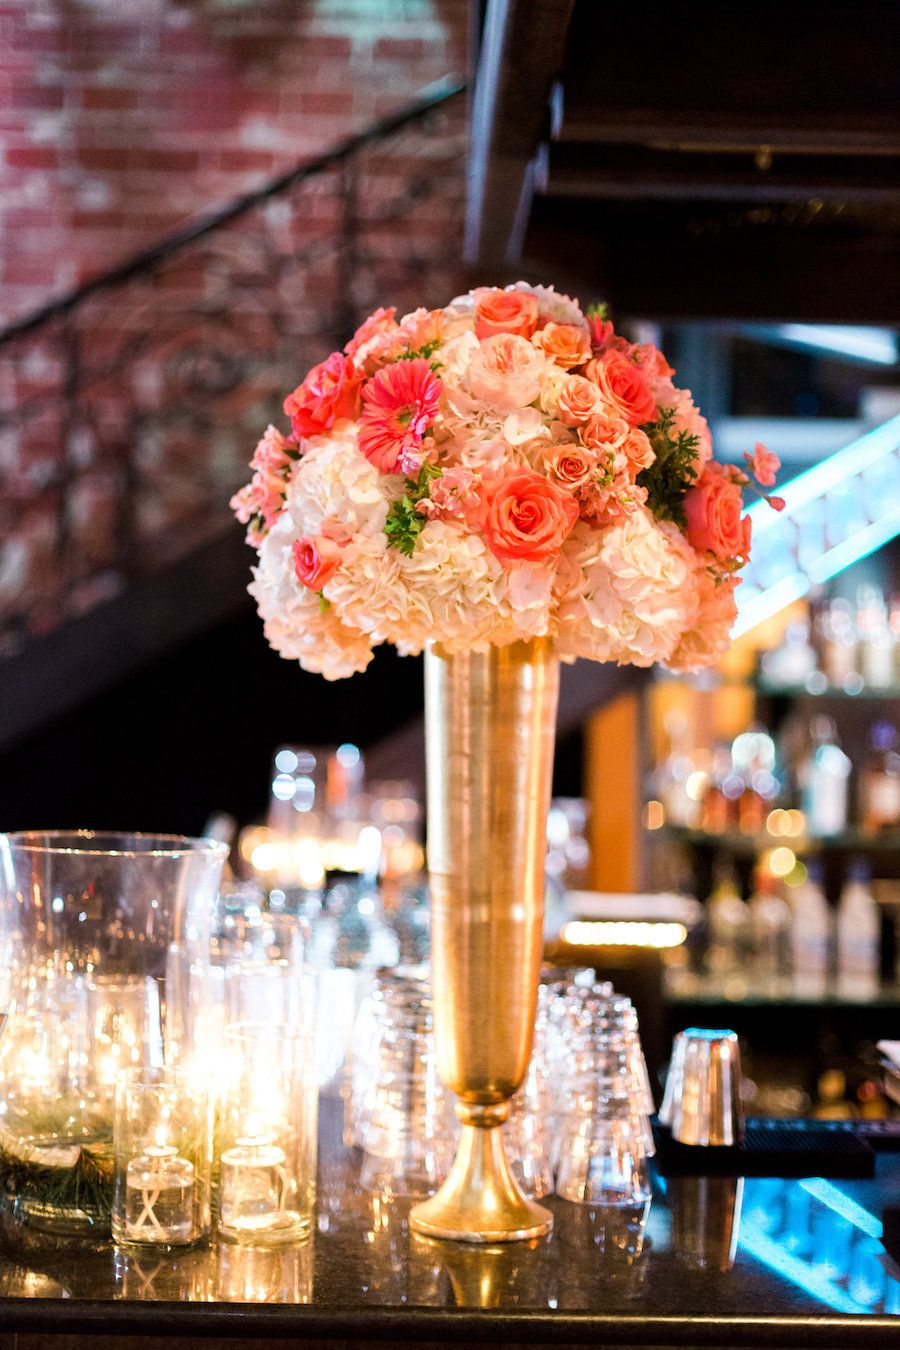 St Pete Wedding Reception Table Decor With Candlelight And Ivory Coral Bouquet Of Flowers In Tall Gold Centerpieces